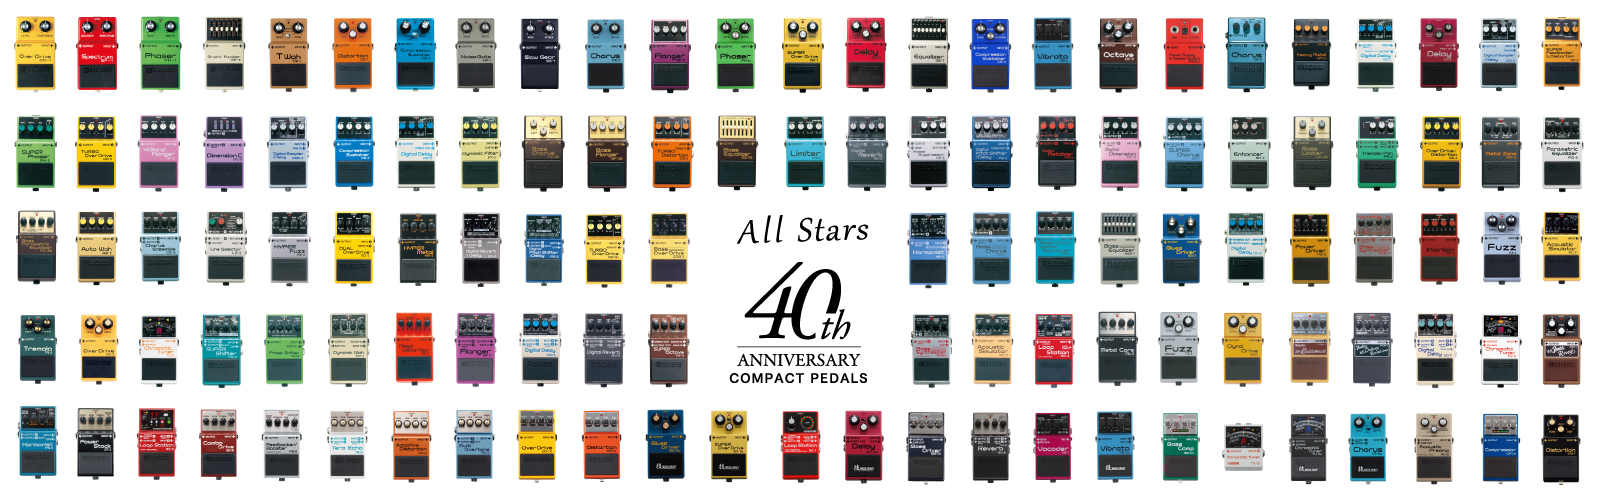 Boss 40th Anniversary Compact Pedals Selector Switch Wiring Diagram Pedal All Stars